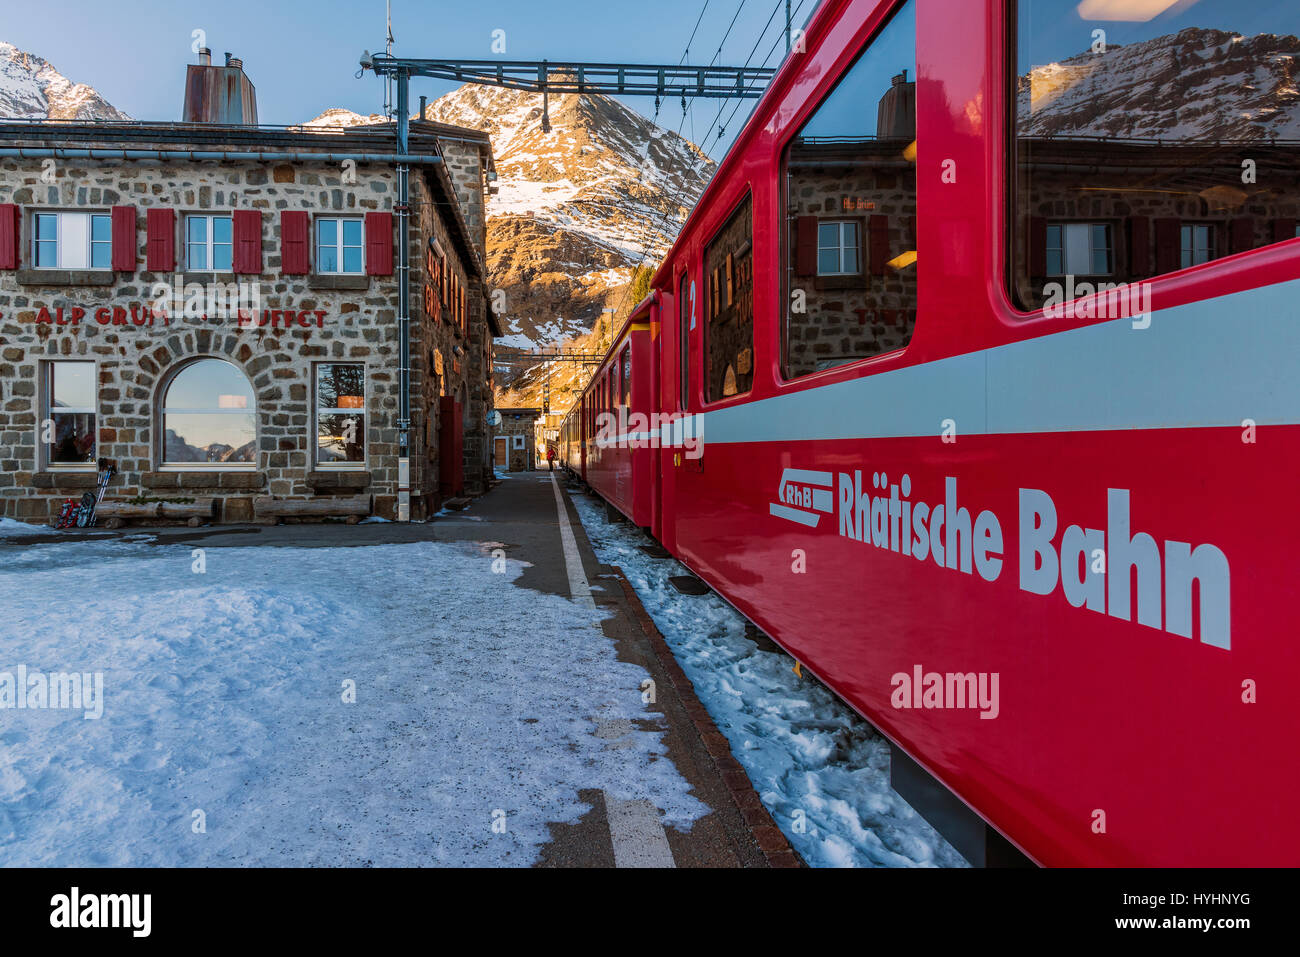 The Bernina Express red train at Alp Grum station, Graubunden, Switzerland - Stock Image